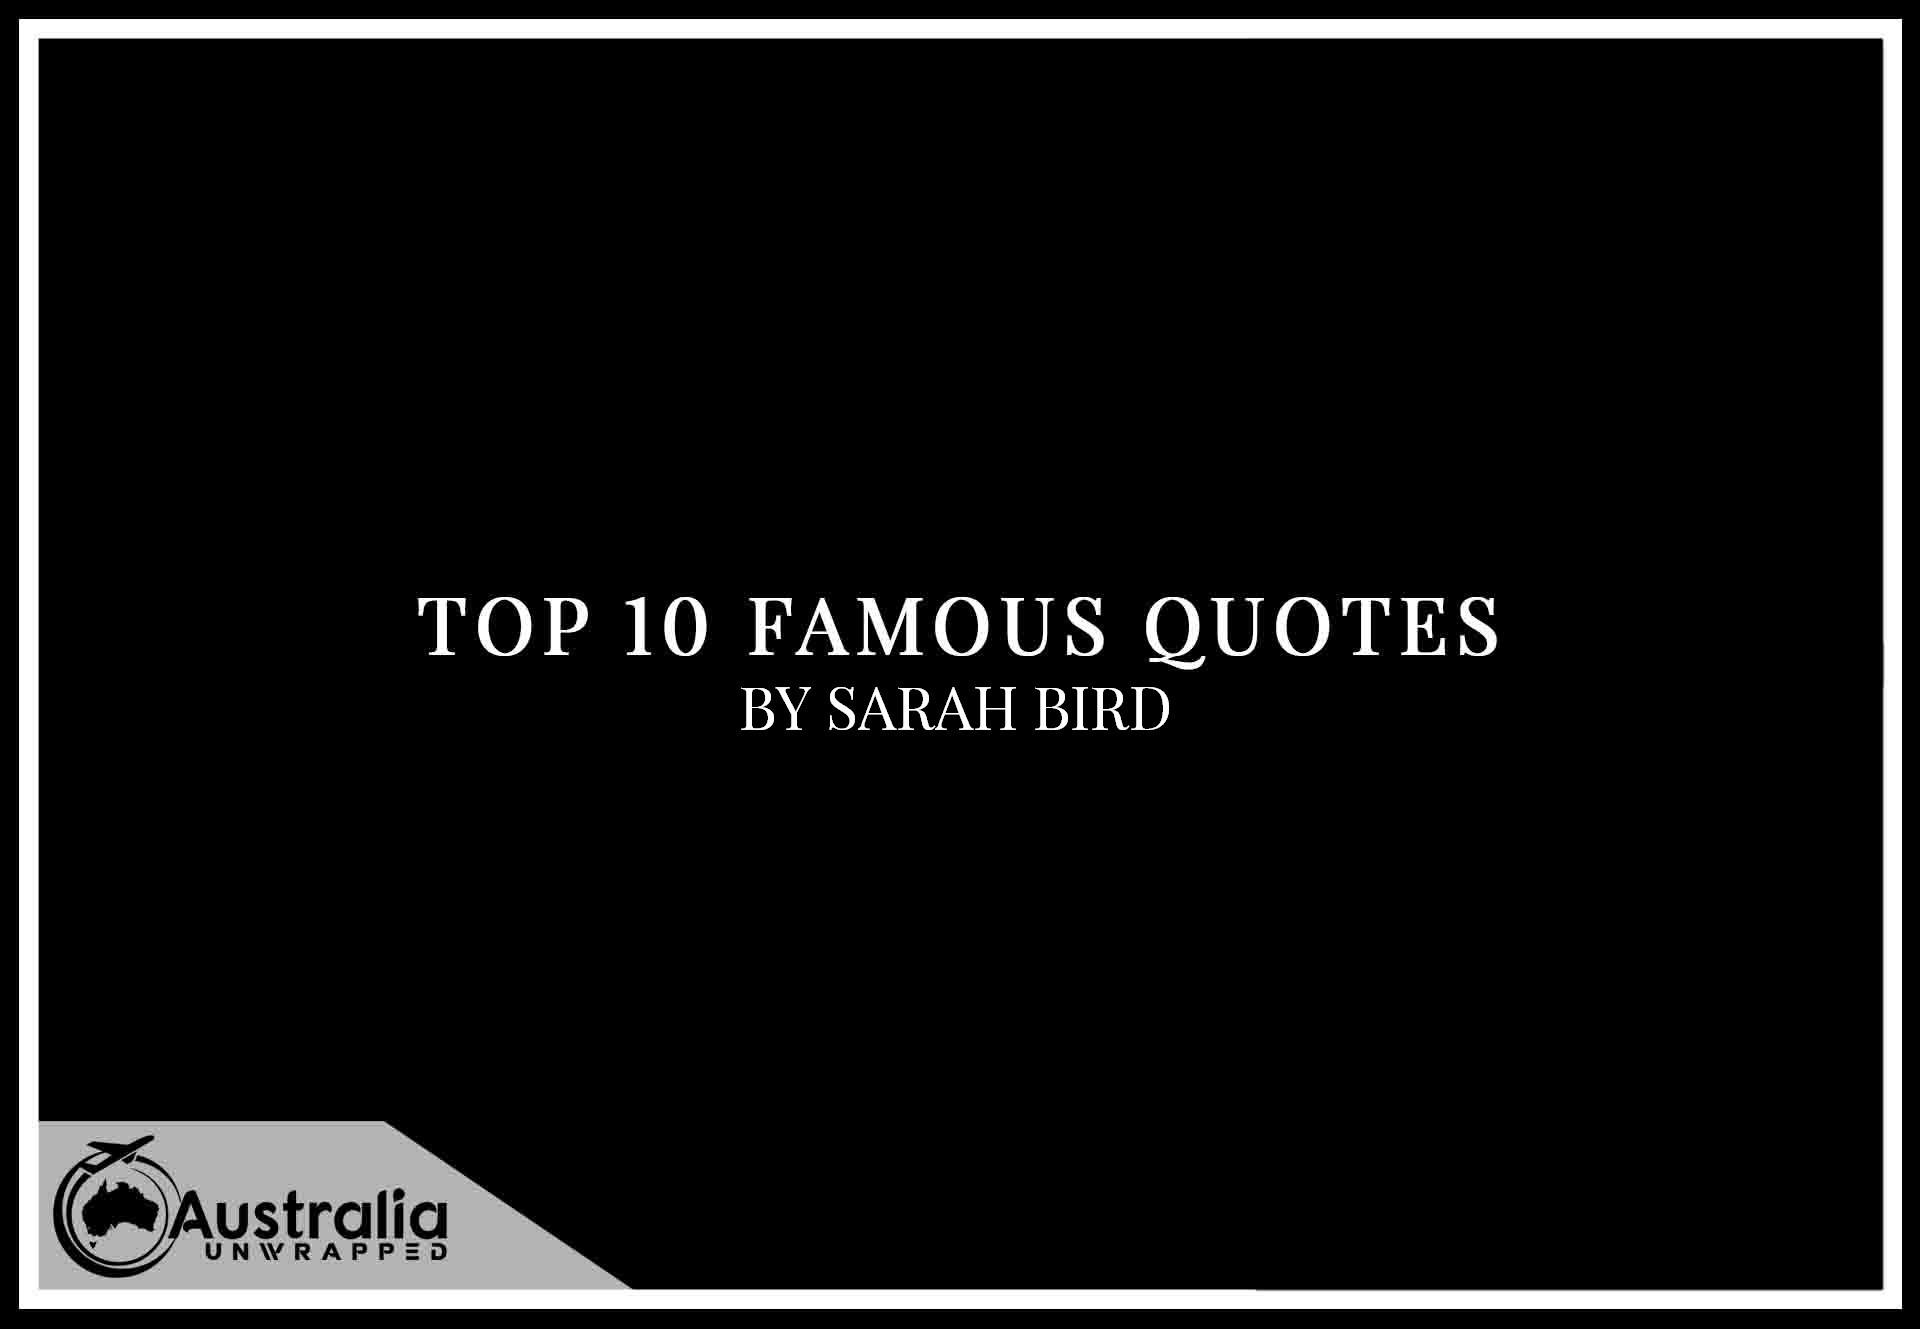 Top 10 Famous Quotes by Author Sarah Bird